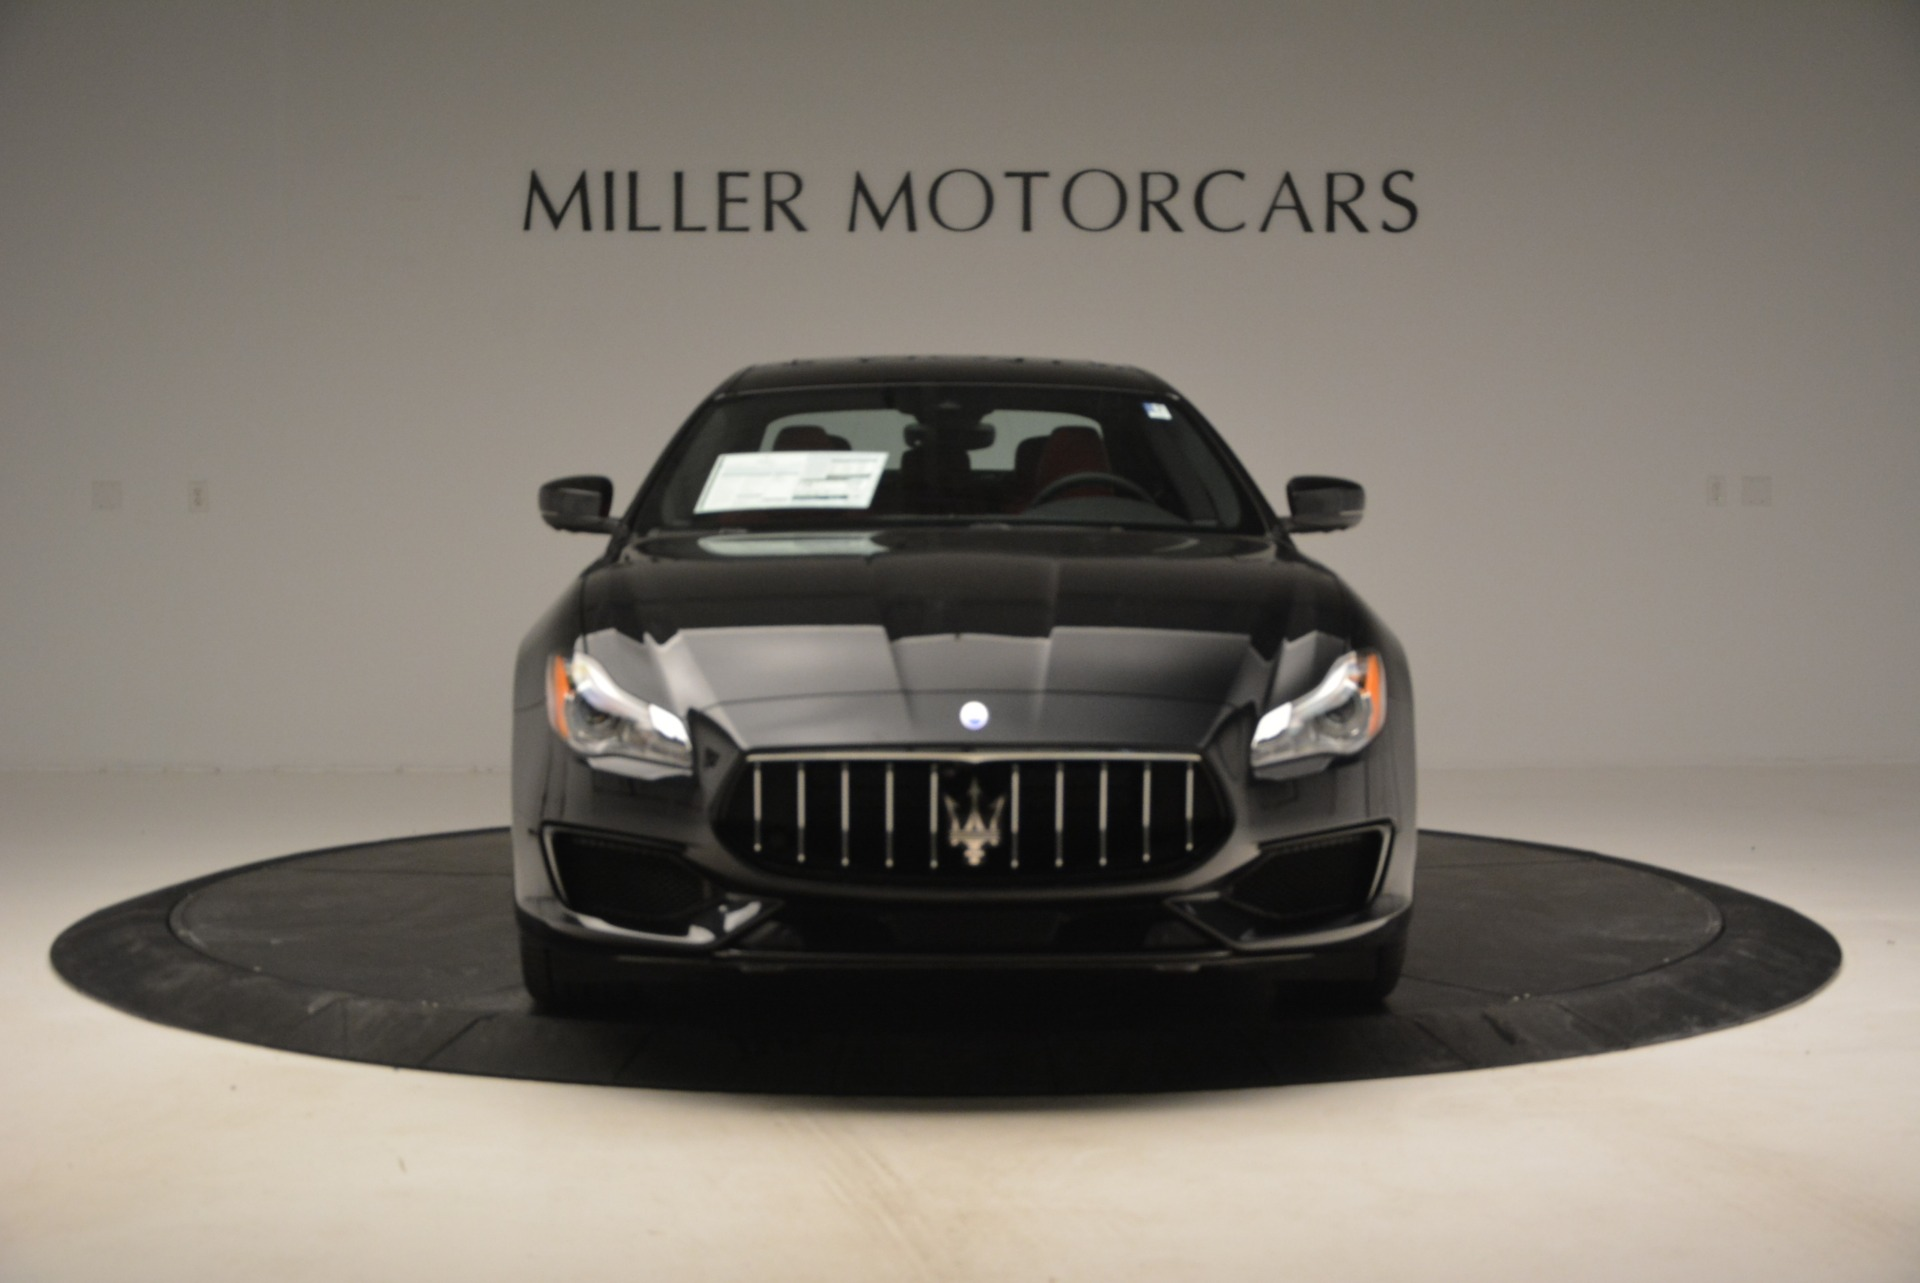 New 2017 Maserati Quattroporte S Q4 GranSport For Sale In Westport, CT 790_p12